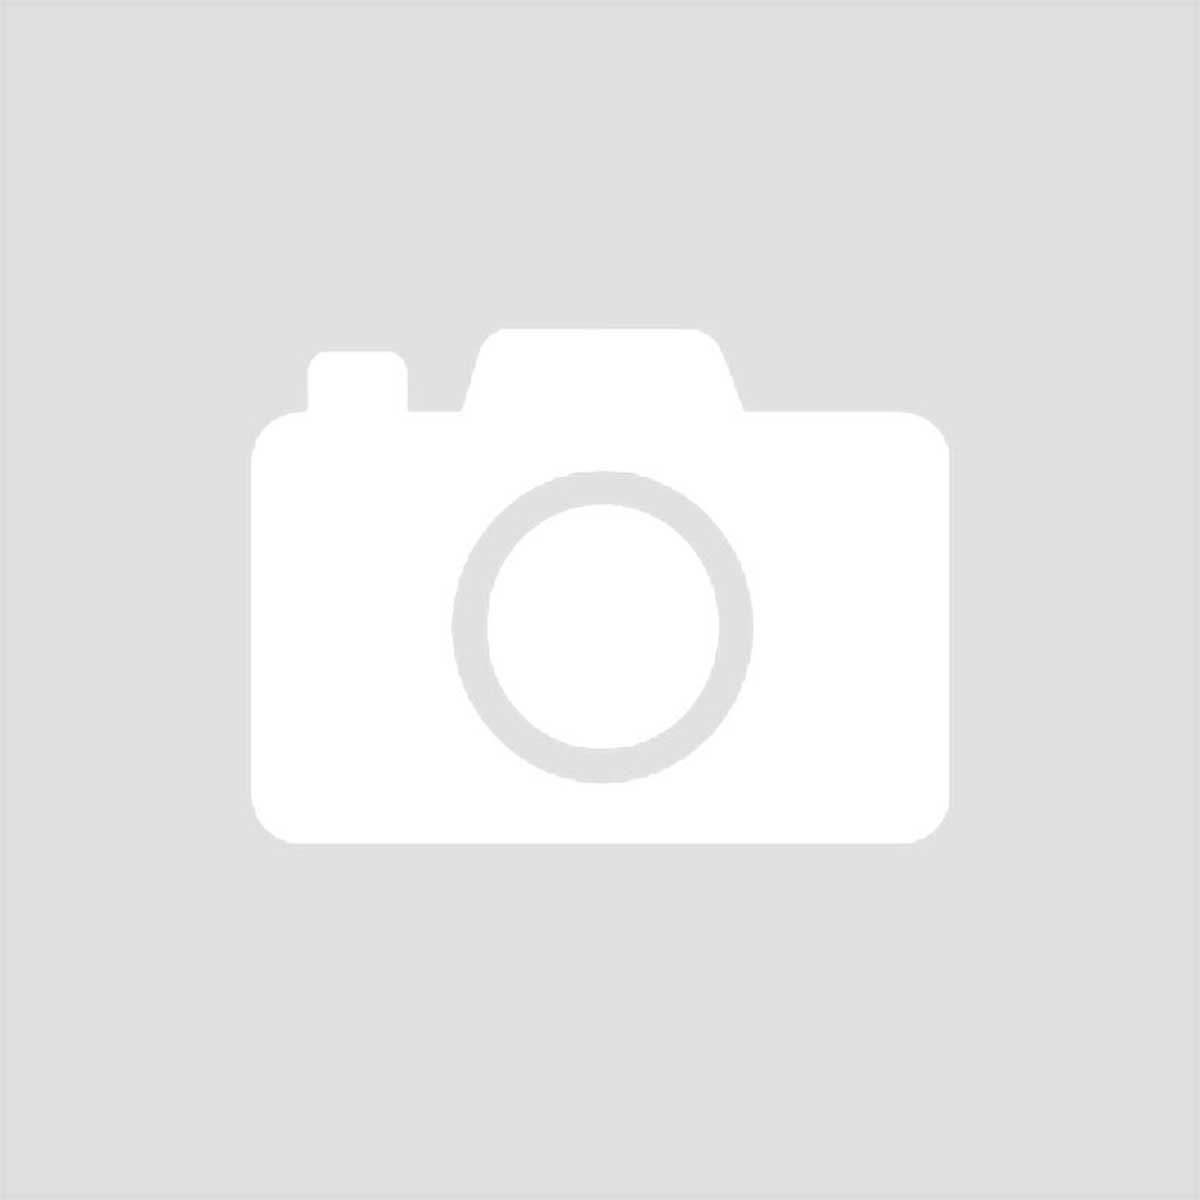 Where to buy Acana Products